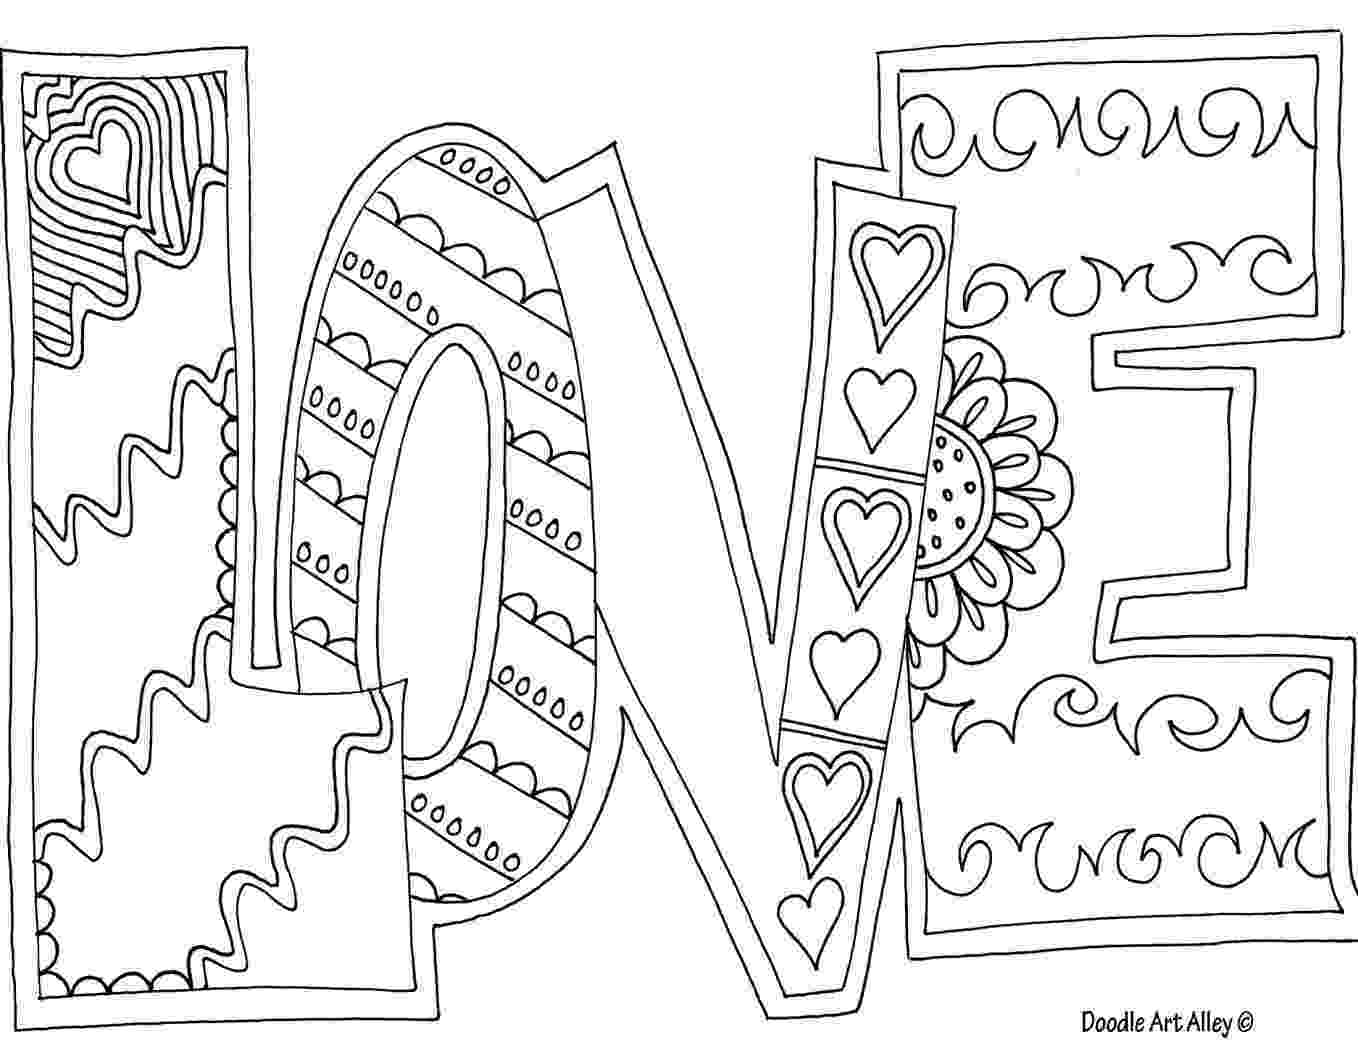 coloring love pictures love coloring page coloring pinterest adult coloring love pictures coloring